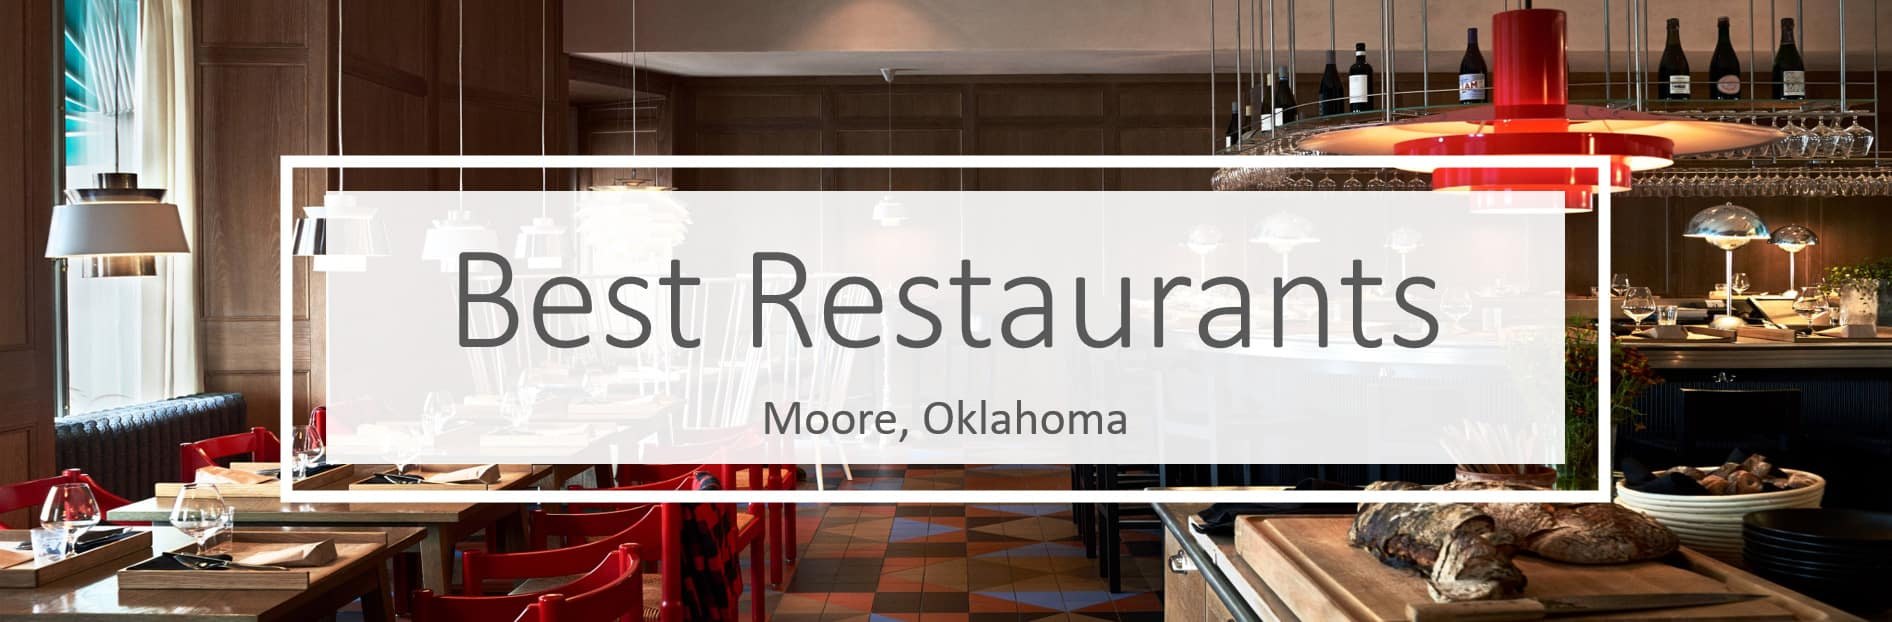 Best Restaurants in Moore, Oklahoma